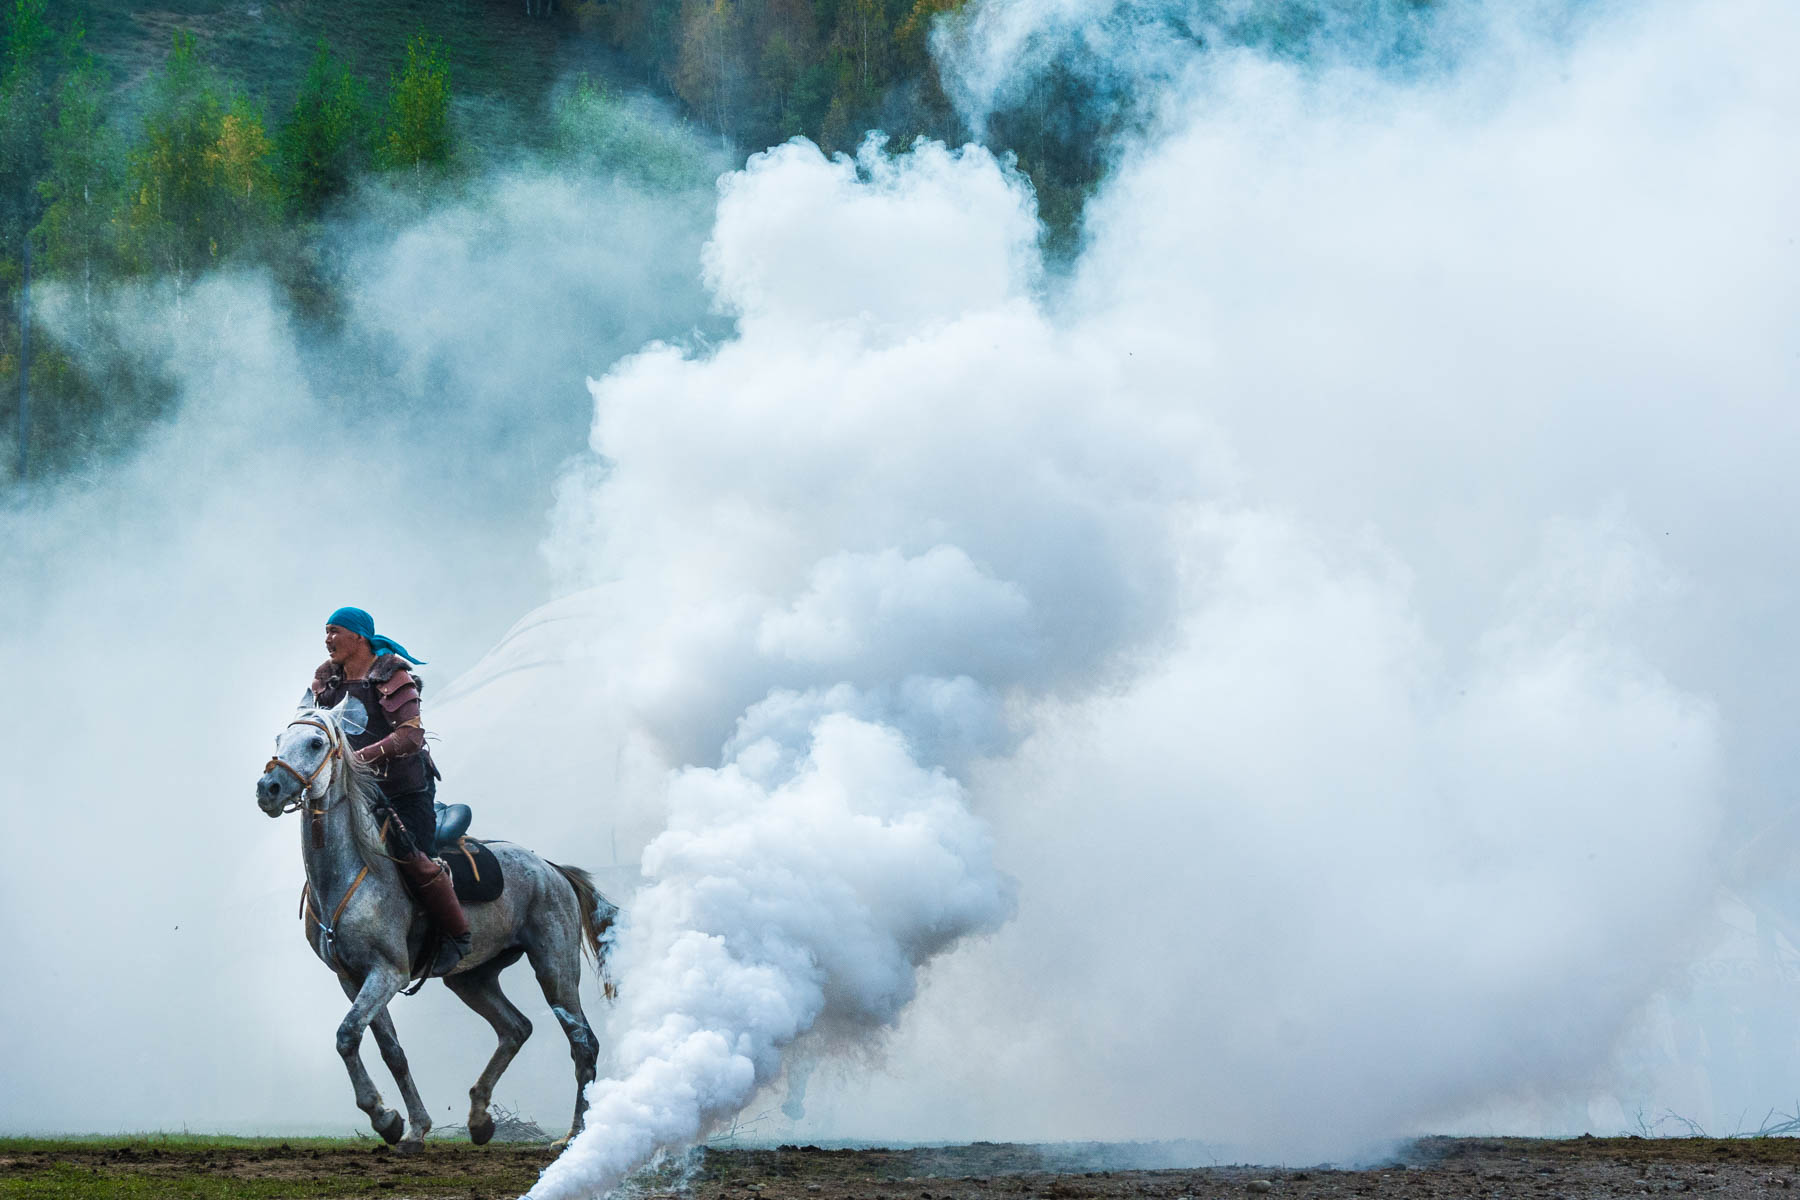 Smoke effects at the World Nomad Games